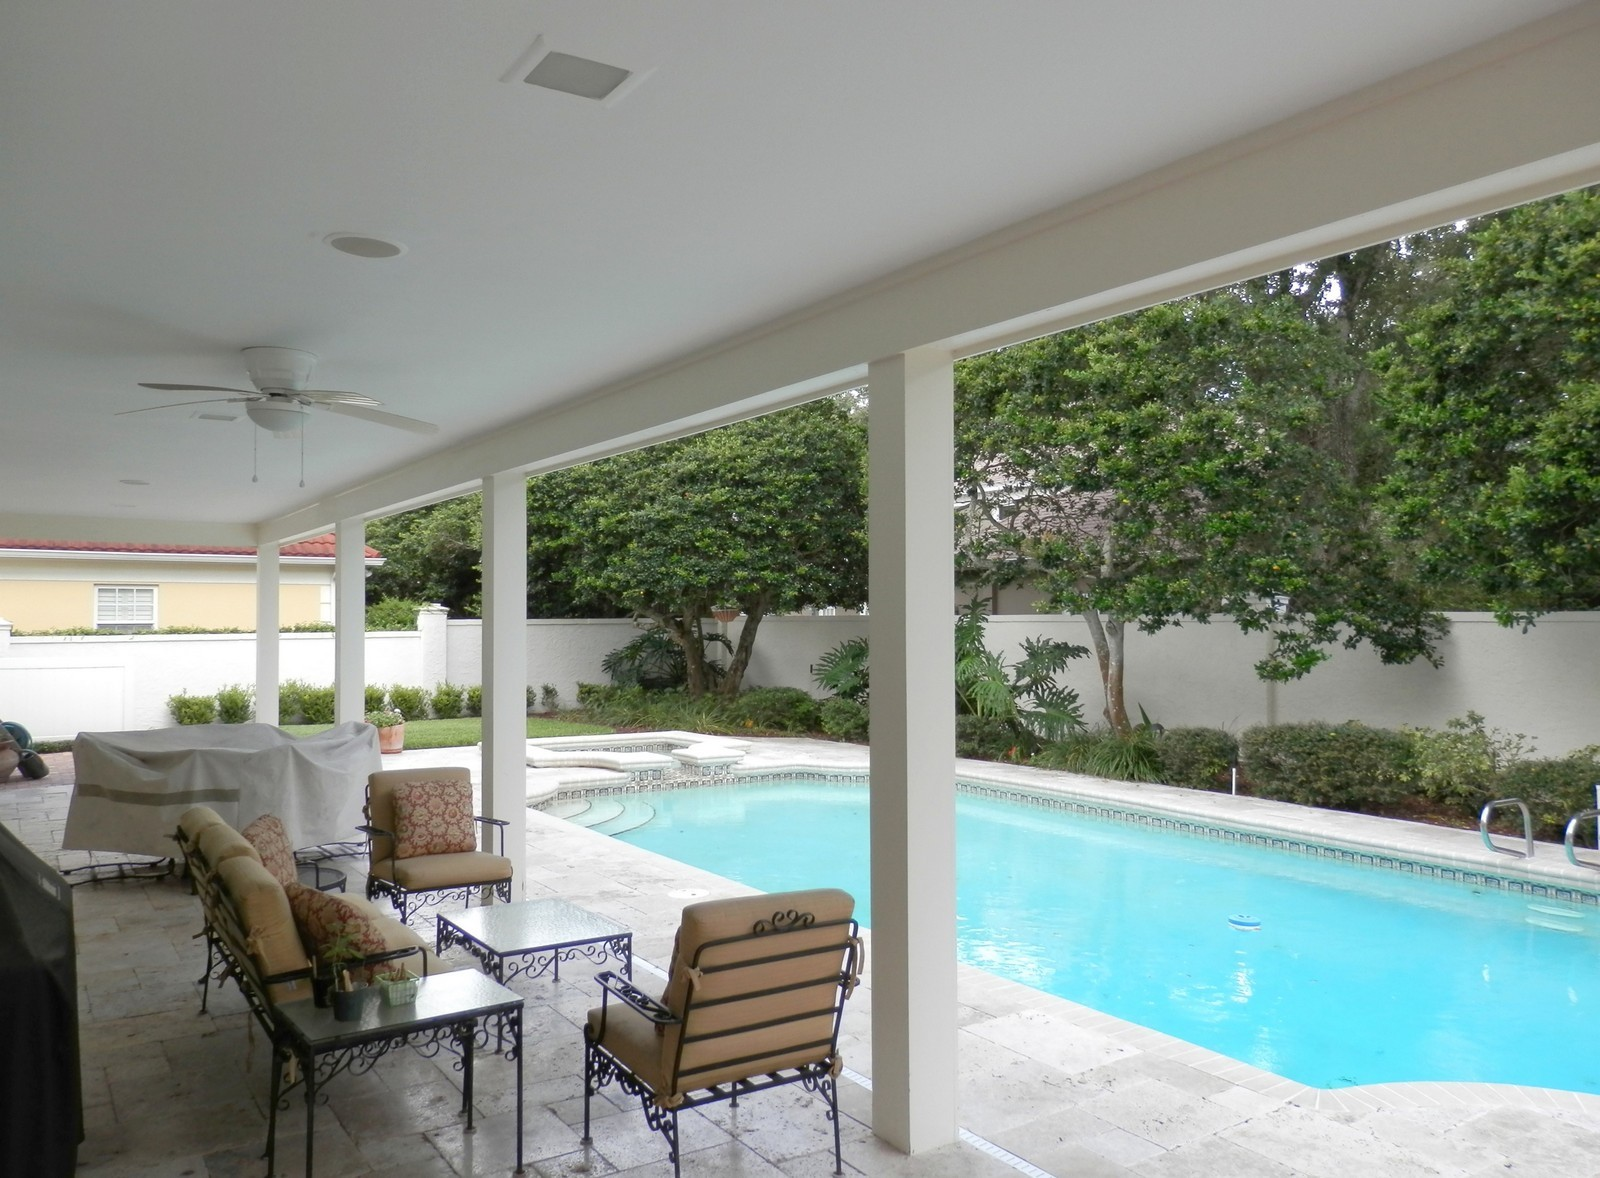 Real Estate Photography - 4922 New Providence Ave, Tampa, FL, 33629 - Pool